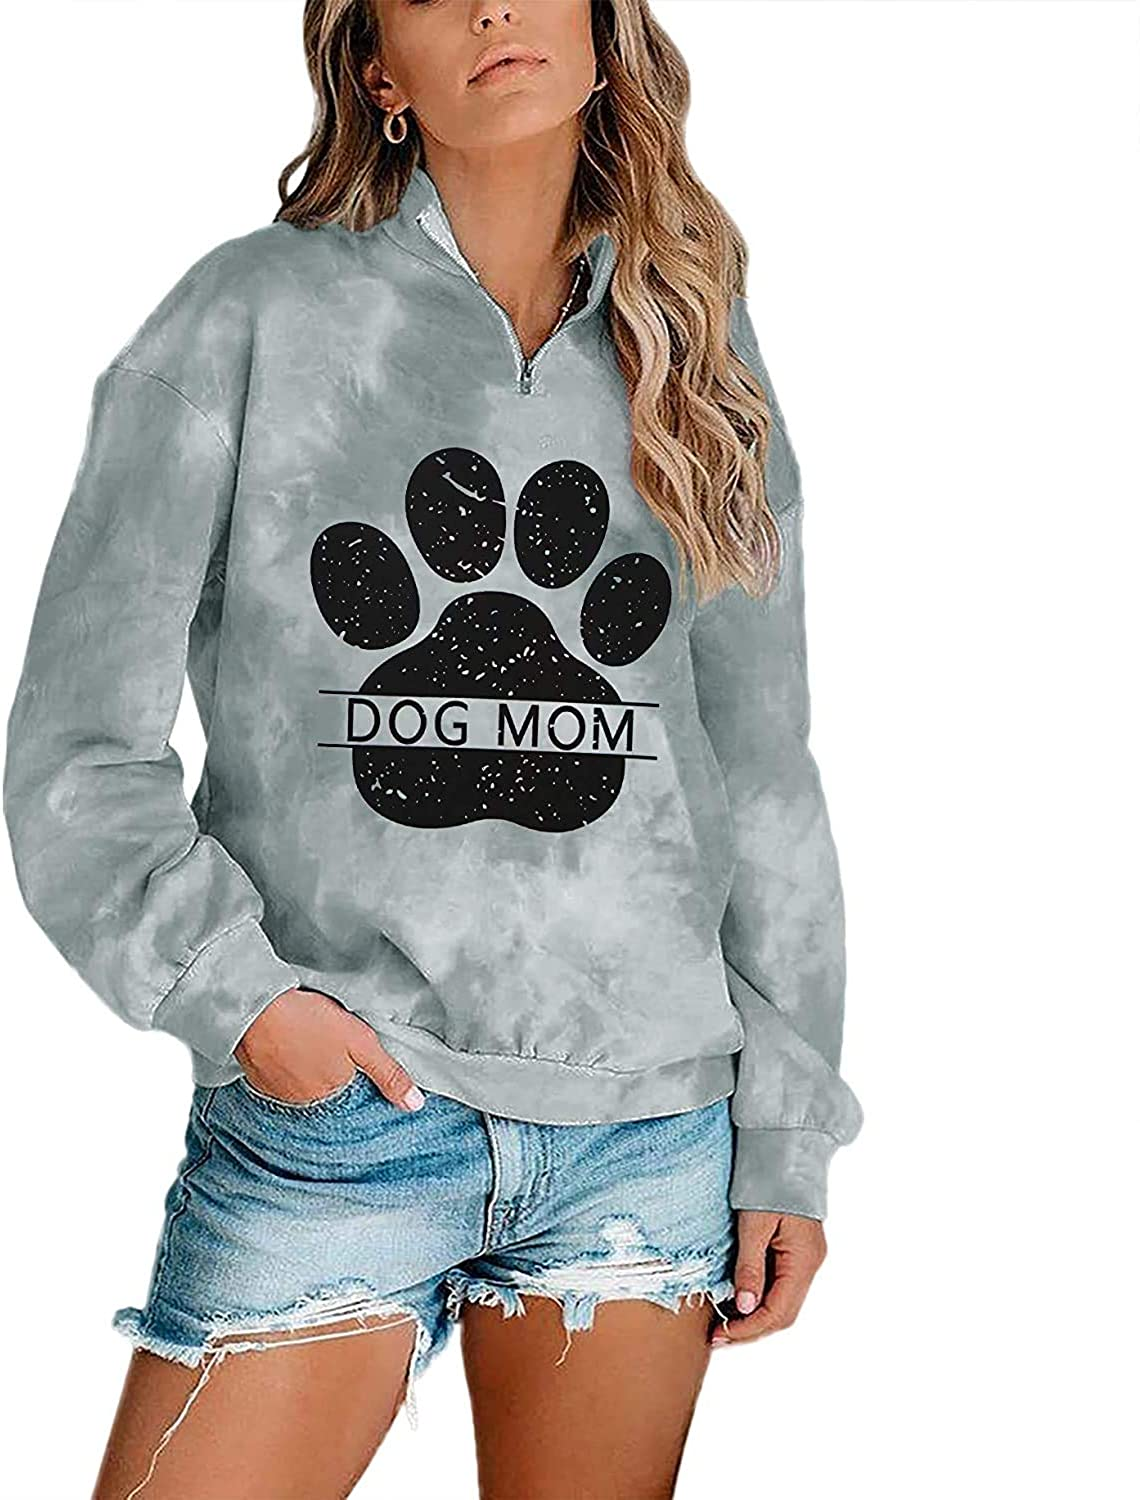 Dog Mom Tie-dye Sweatshirts Women Funny Dog Paw Graphic Shirts Casual Pullover Long Sleeve Top Blouse